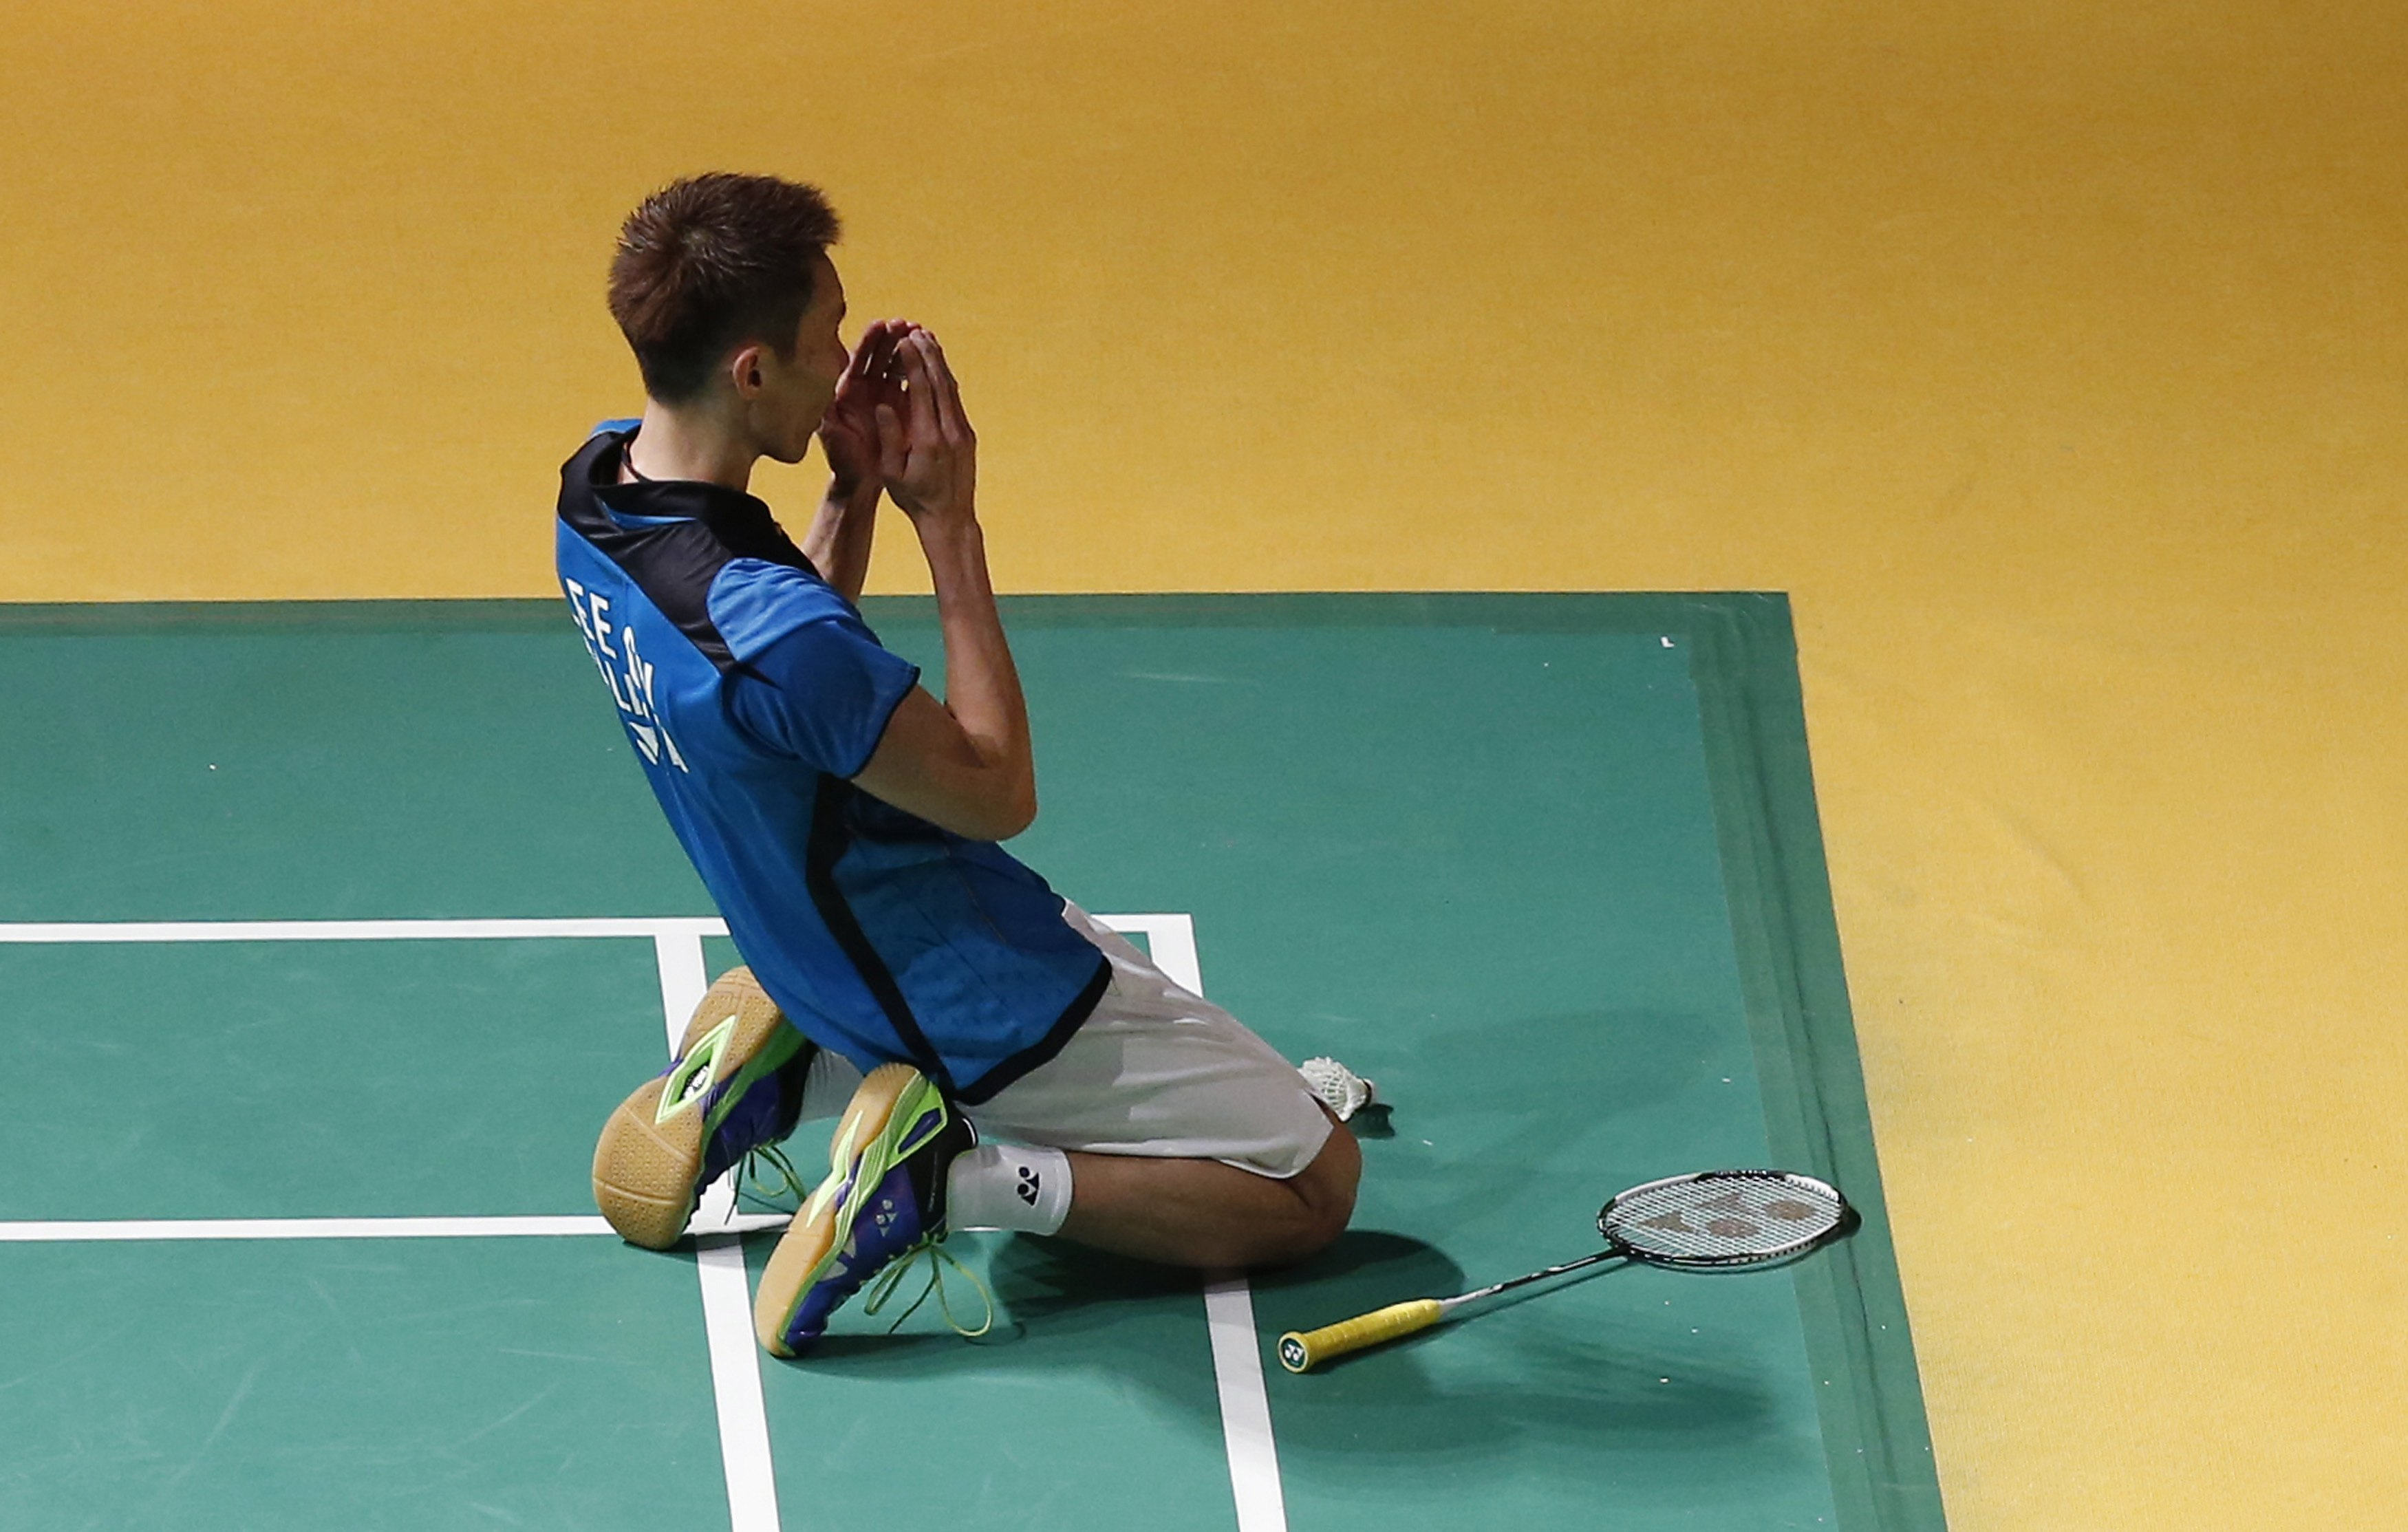 Lee Chong Wei of Malaysia reacts after winning the men's singles final match against Tommy Sugiarto of Indonesia at the Malaysian Open Super Series 2014 badminton tournament in Kuala Lumpur January 19, 2014. — Reuters pic